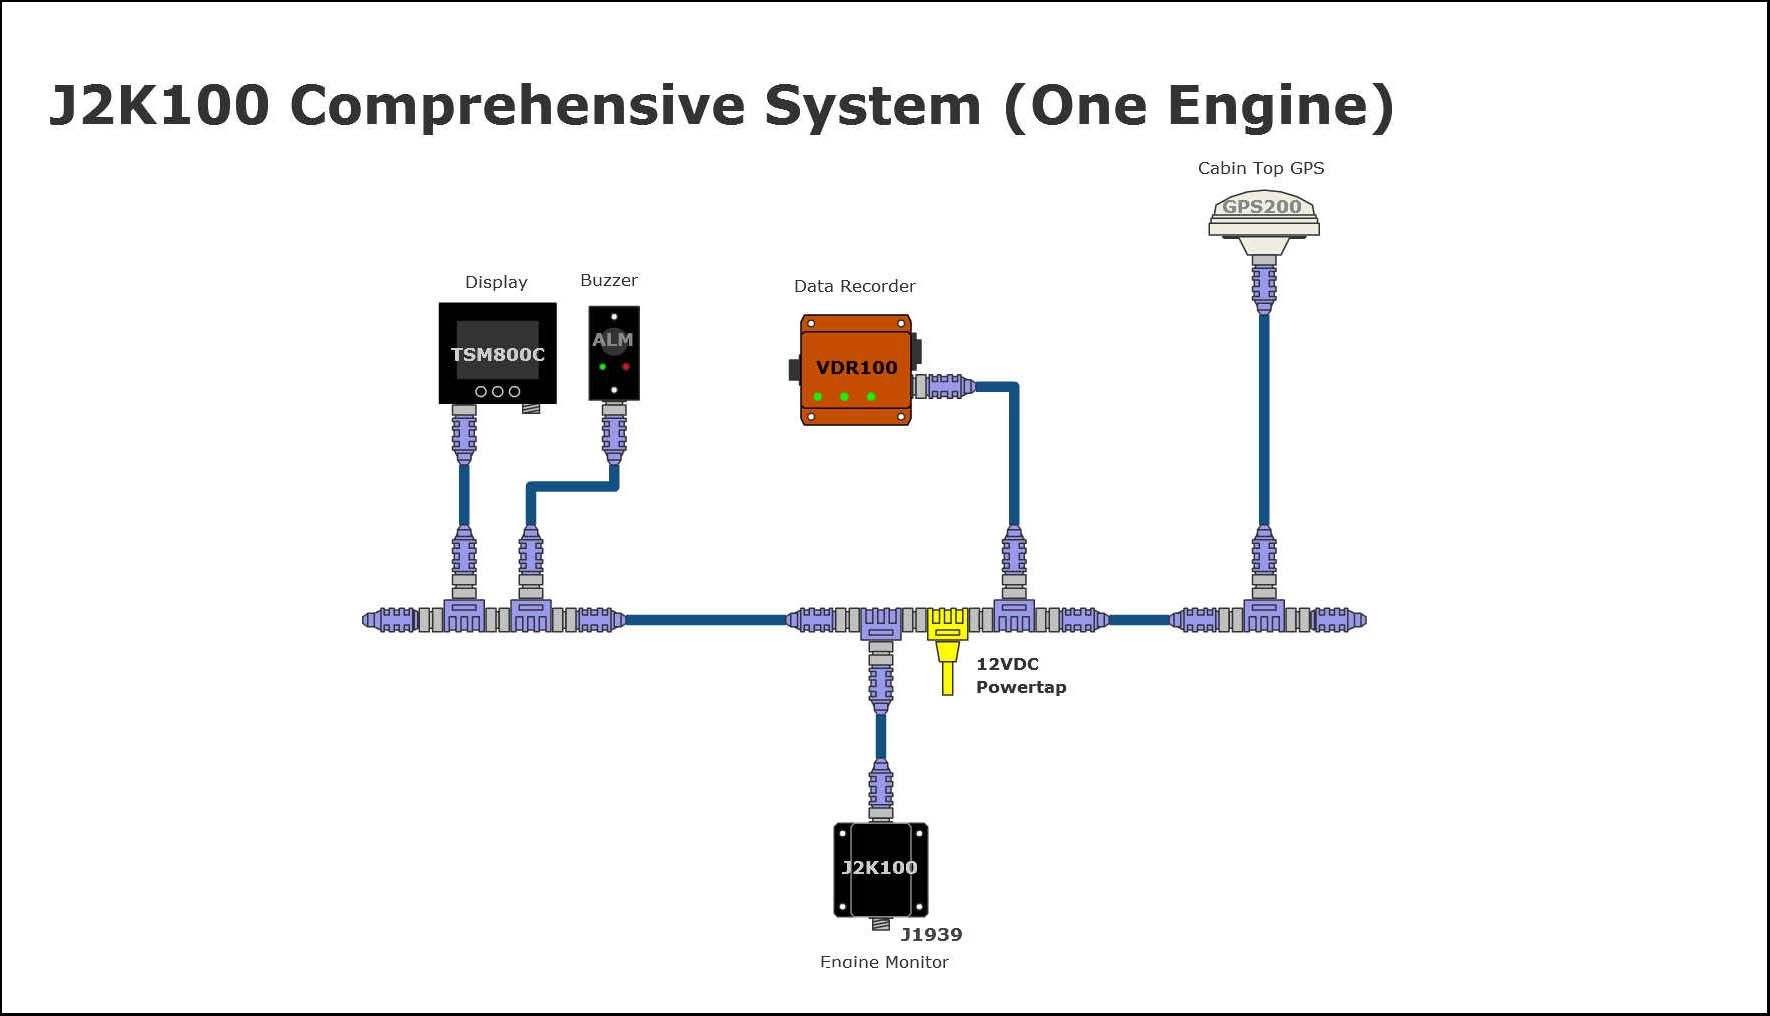 maretron j1939 to nmea 2000 engine monitoring gateway j2k100 network diagram